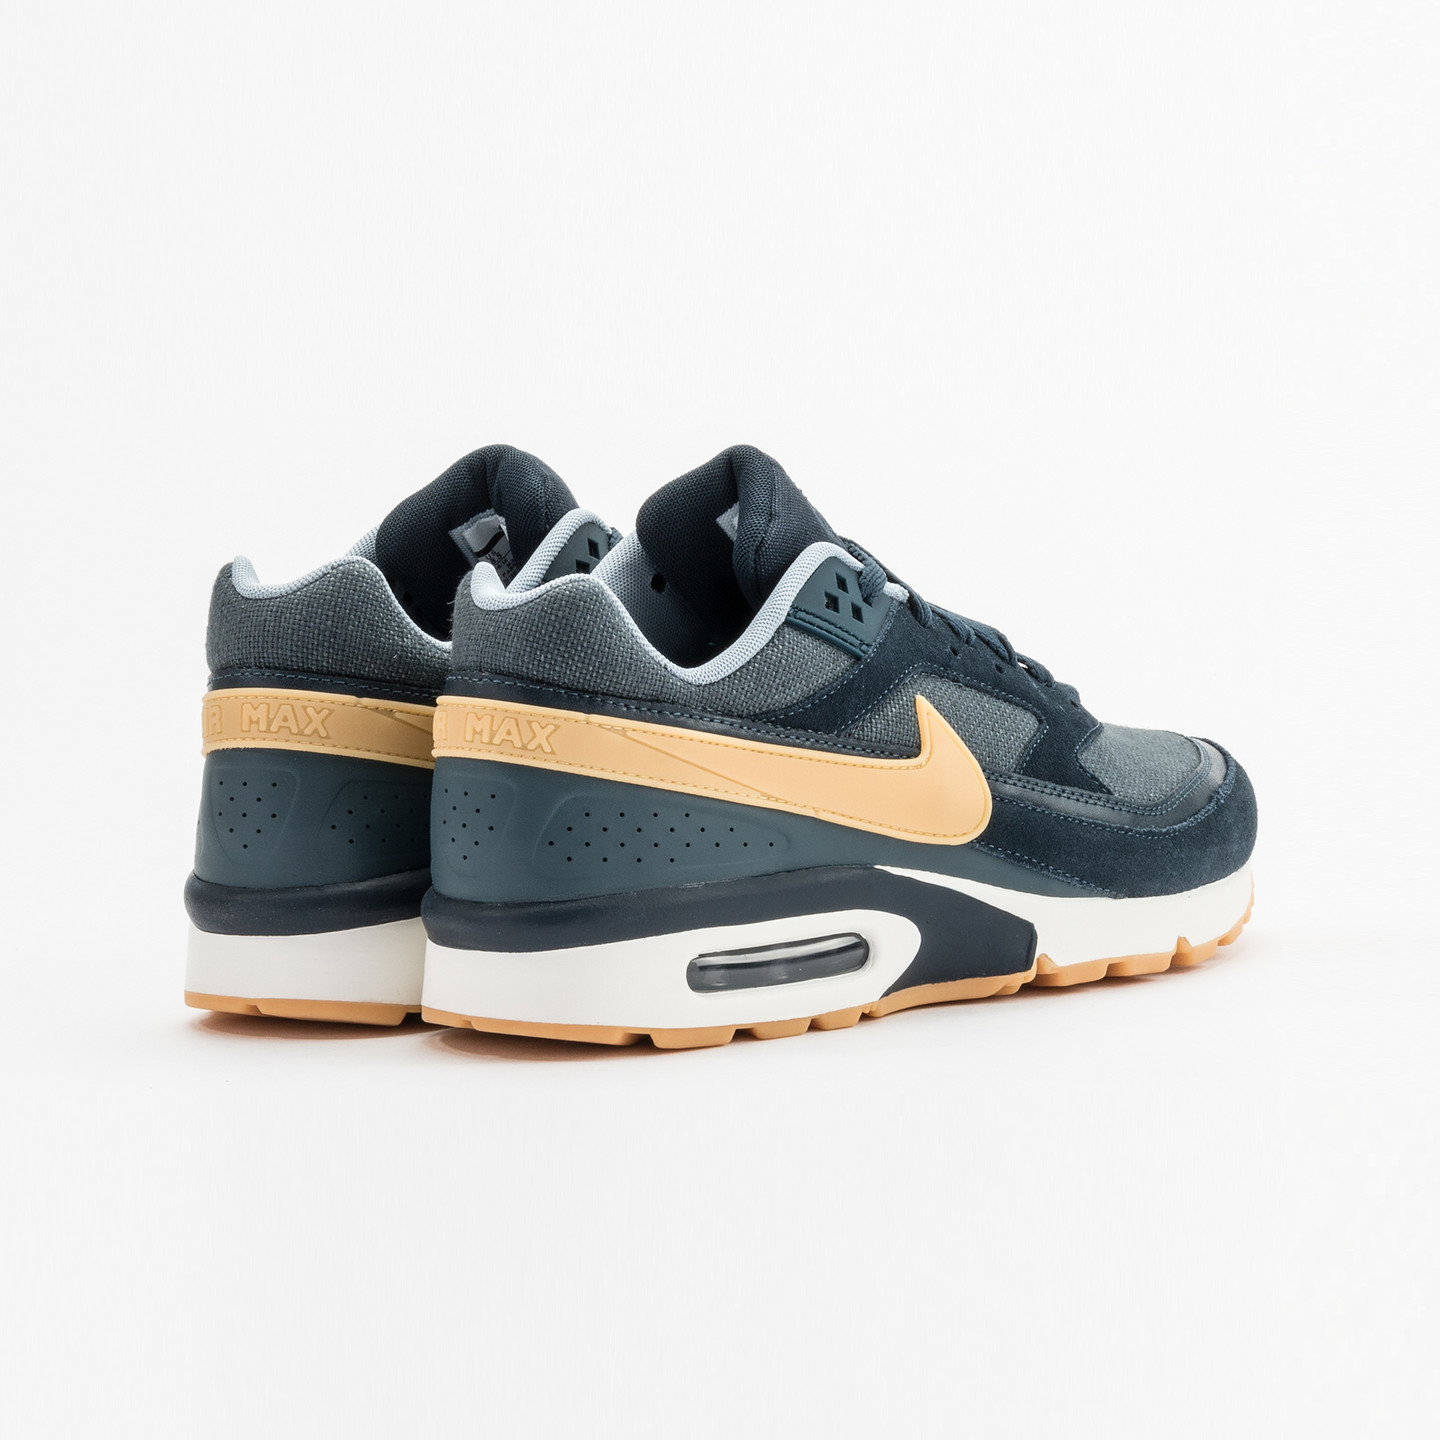 Nike Air Max BW Premium Armory Navy / Yellow / Gum 819523-401